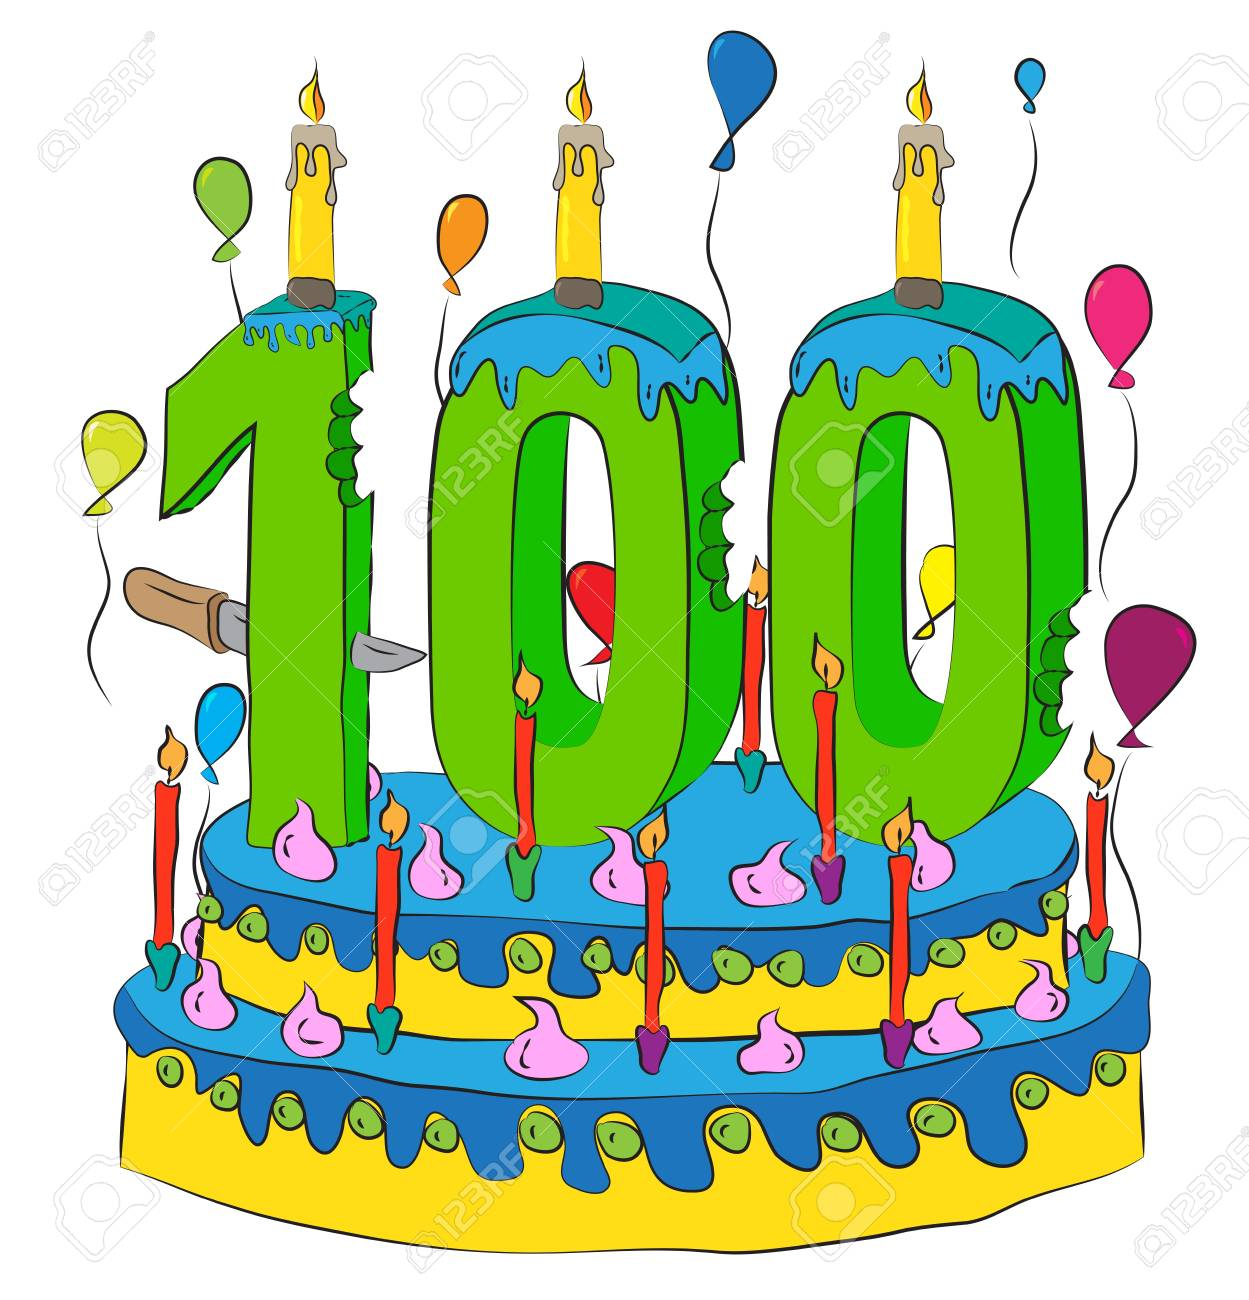 100 Birthday Cake With Number Hundred Candle, Celebrating Hundredth.